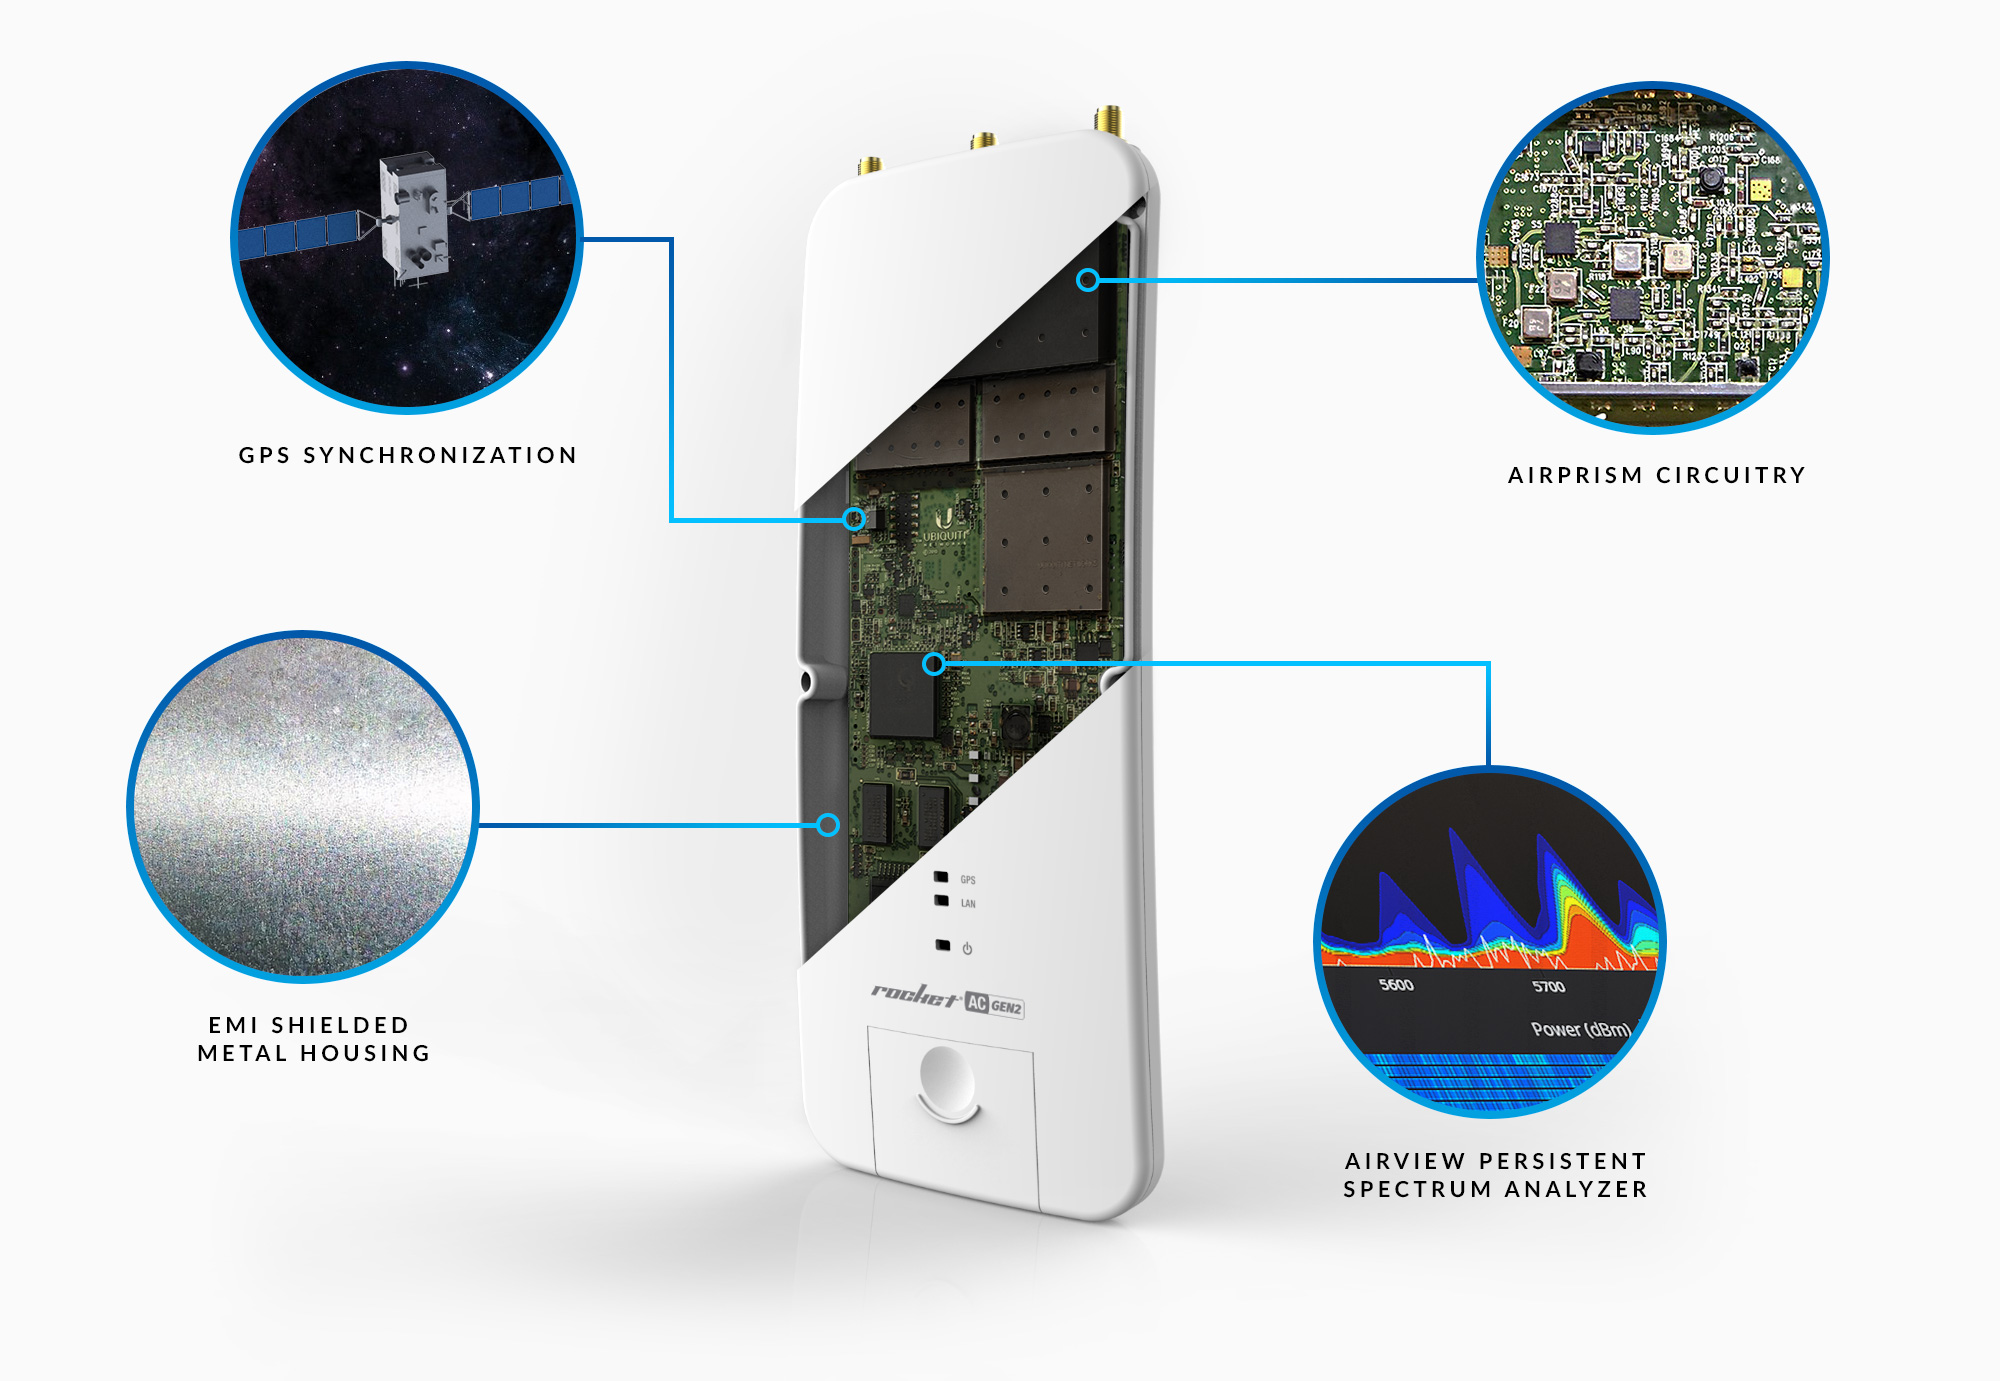 Ubiquiti Networks Rocket Prism Ac Shielded Power Cord Wiring Diagram The Features Emi Metal Housing Gps Airprism Circuitry And Airview Real Time Spectrum Analyzer To Deliver Maximum Spectral